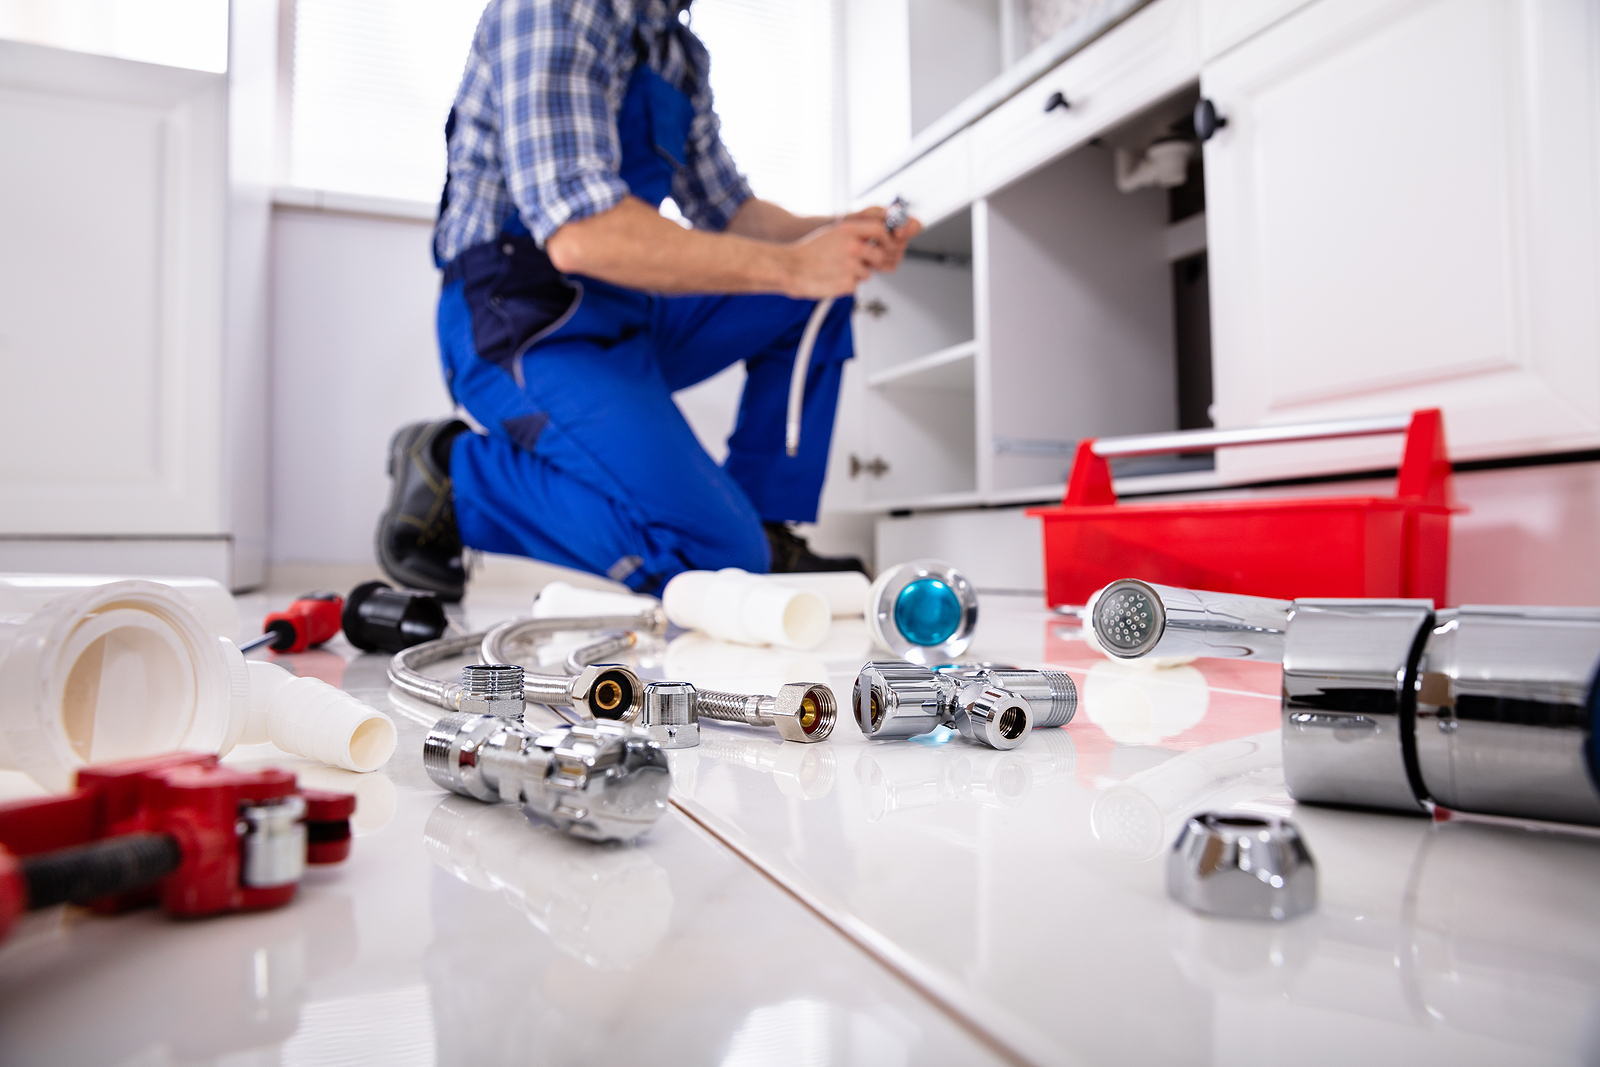 Canberra Plumber And His Tools On The Floor